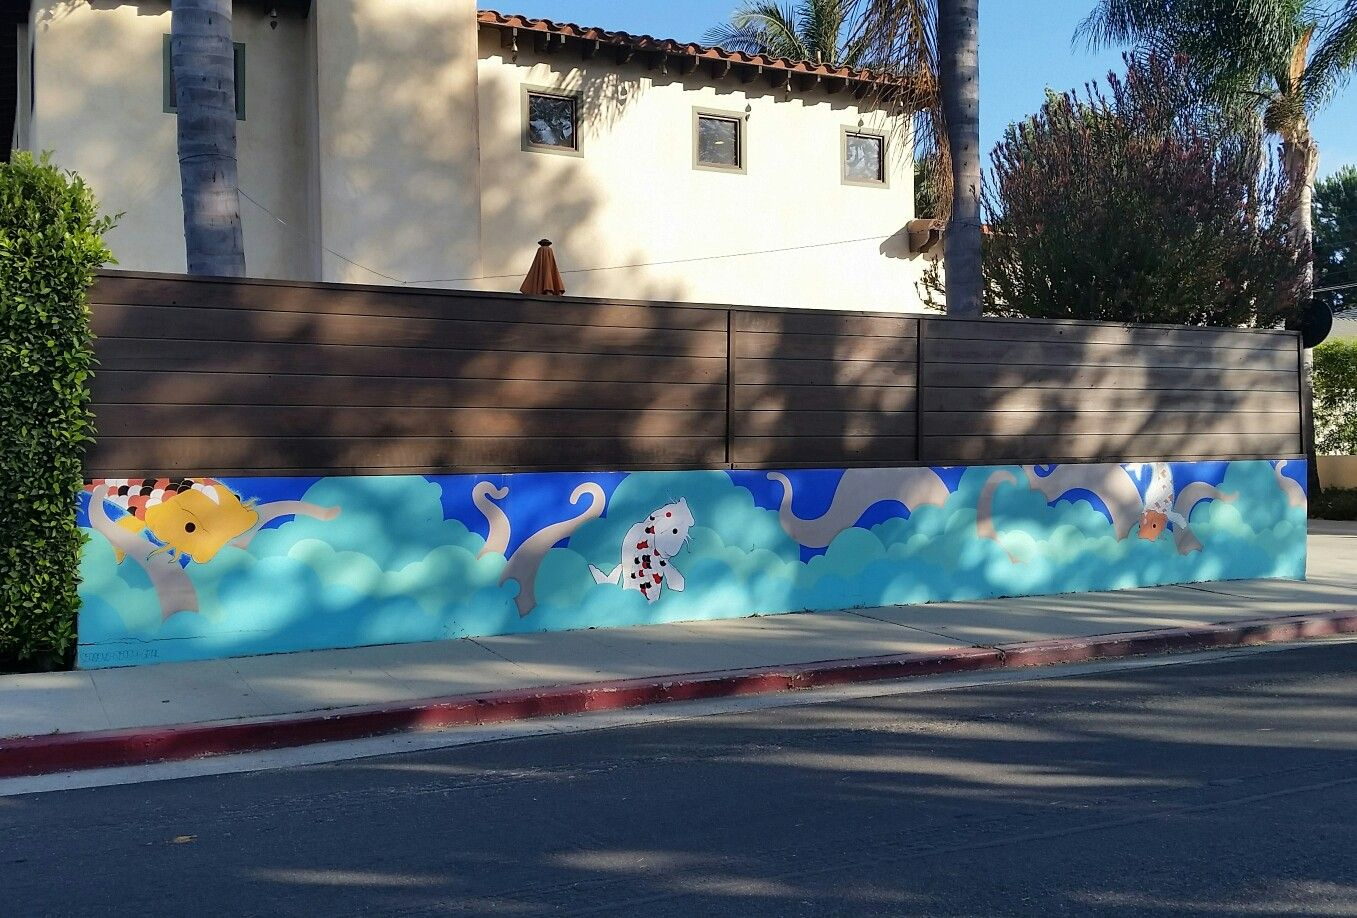 Here S A Cool Koi Fish Octopus Mural On A Private Residence On Vienna Way Glyndon Ct By Local Artist Season Los Angeles Neighborhoods Venice Beach Glyndon